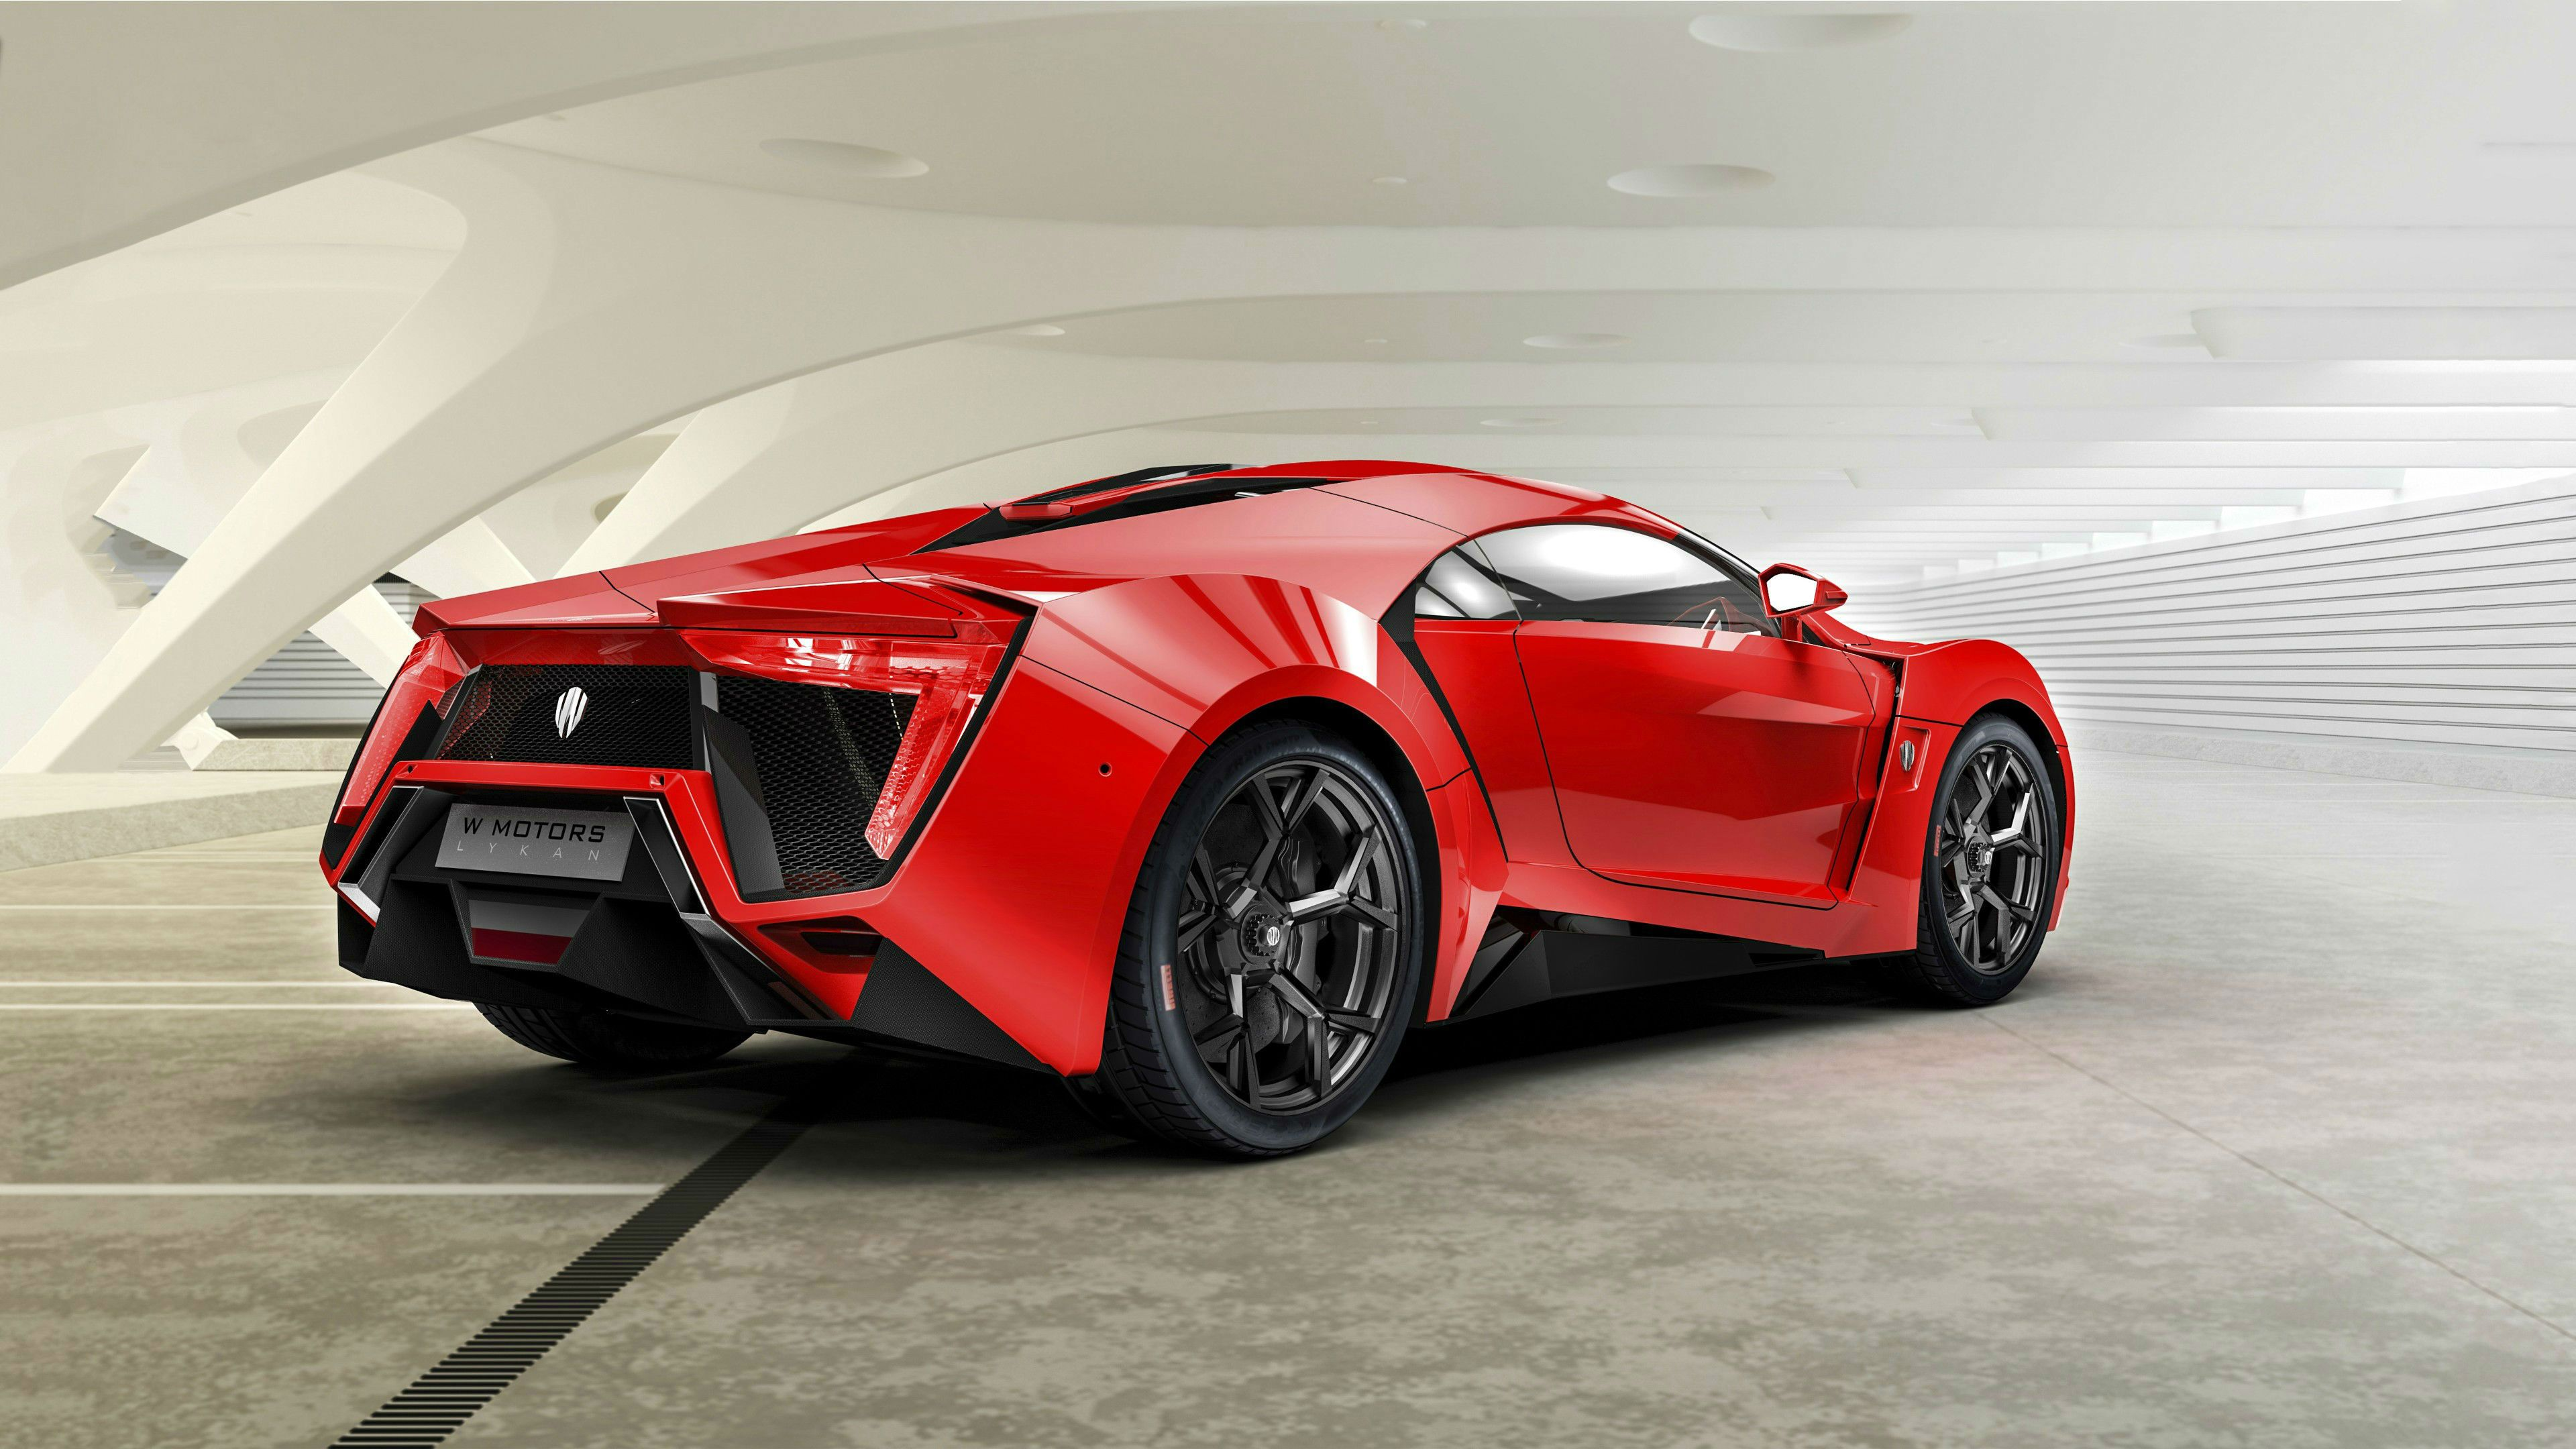 Tumblr Static D7um5keq3qgookoksc48c8gsg Jpg 3840 2160 Lykan Hypersport Fast Sports Cars Super Cars